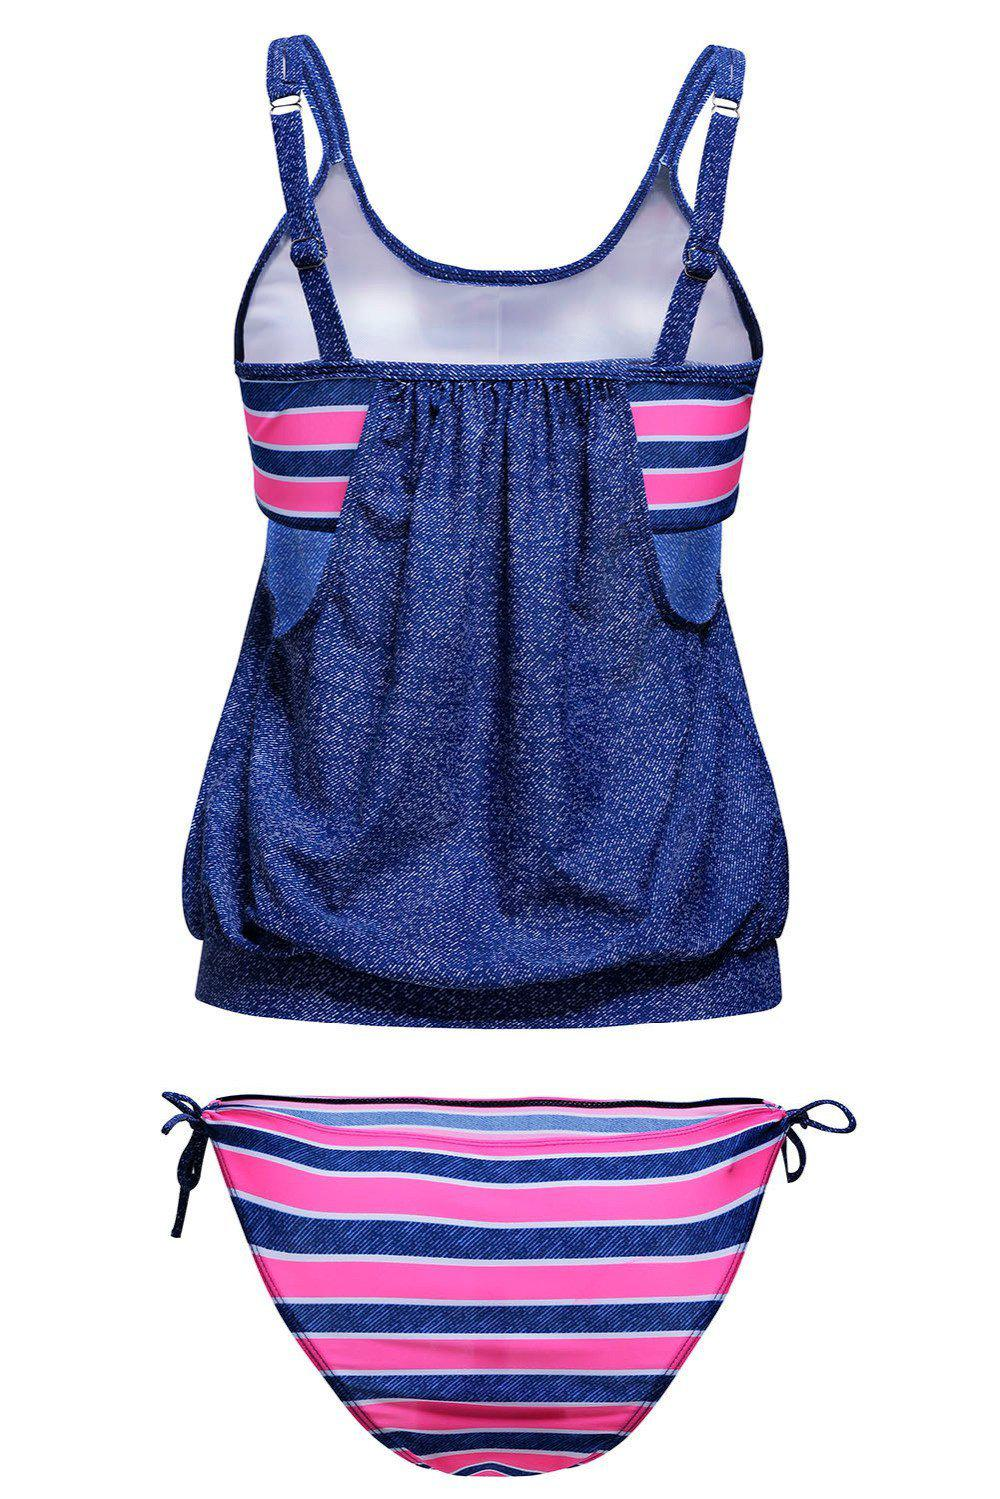 Plus Size Tankini Swimsuit Student Two Piece Bikini Set Striped Double Up Sport Swimwear Women 2 Piece Suits XL XXL XXXL-ACTIVEWEAR-SheSimplyShops